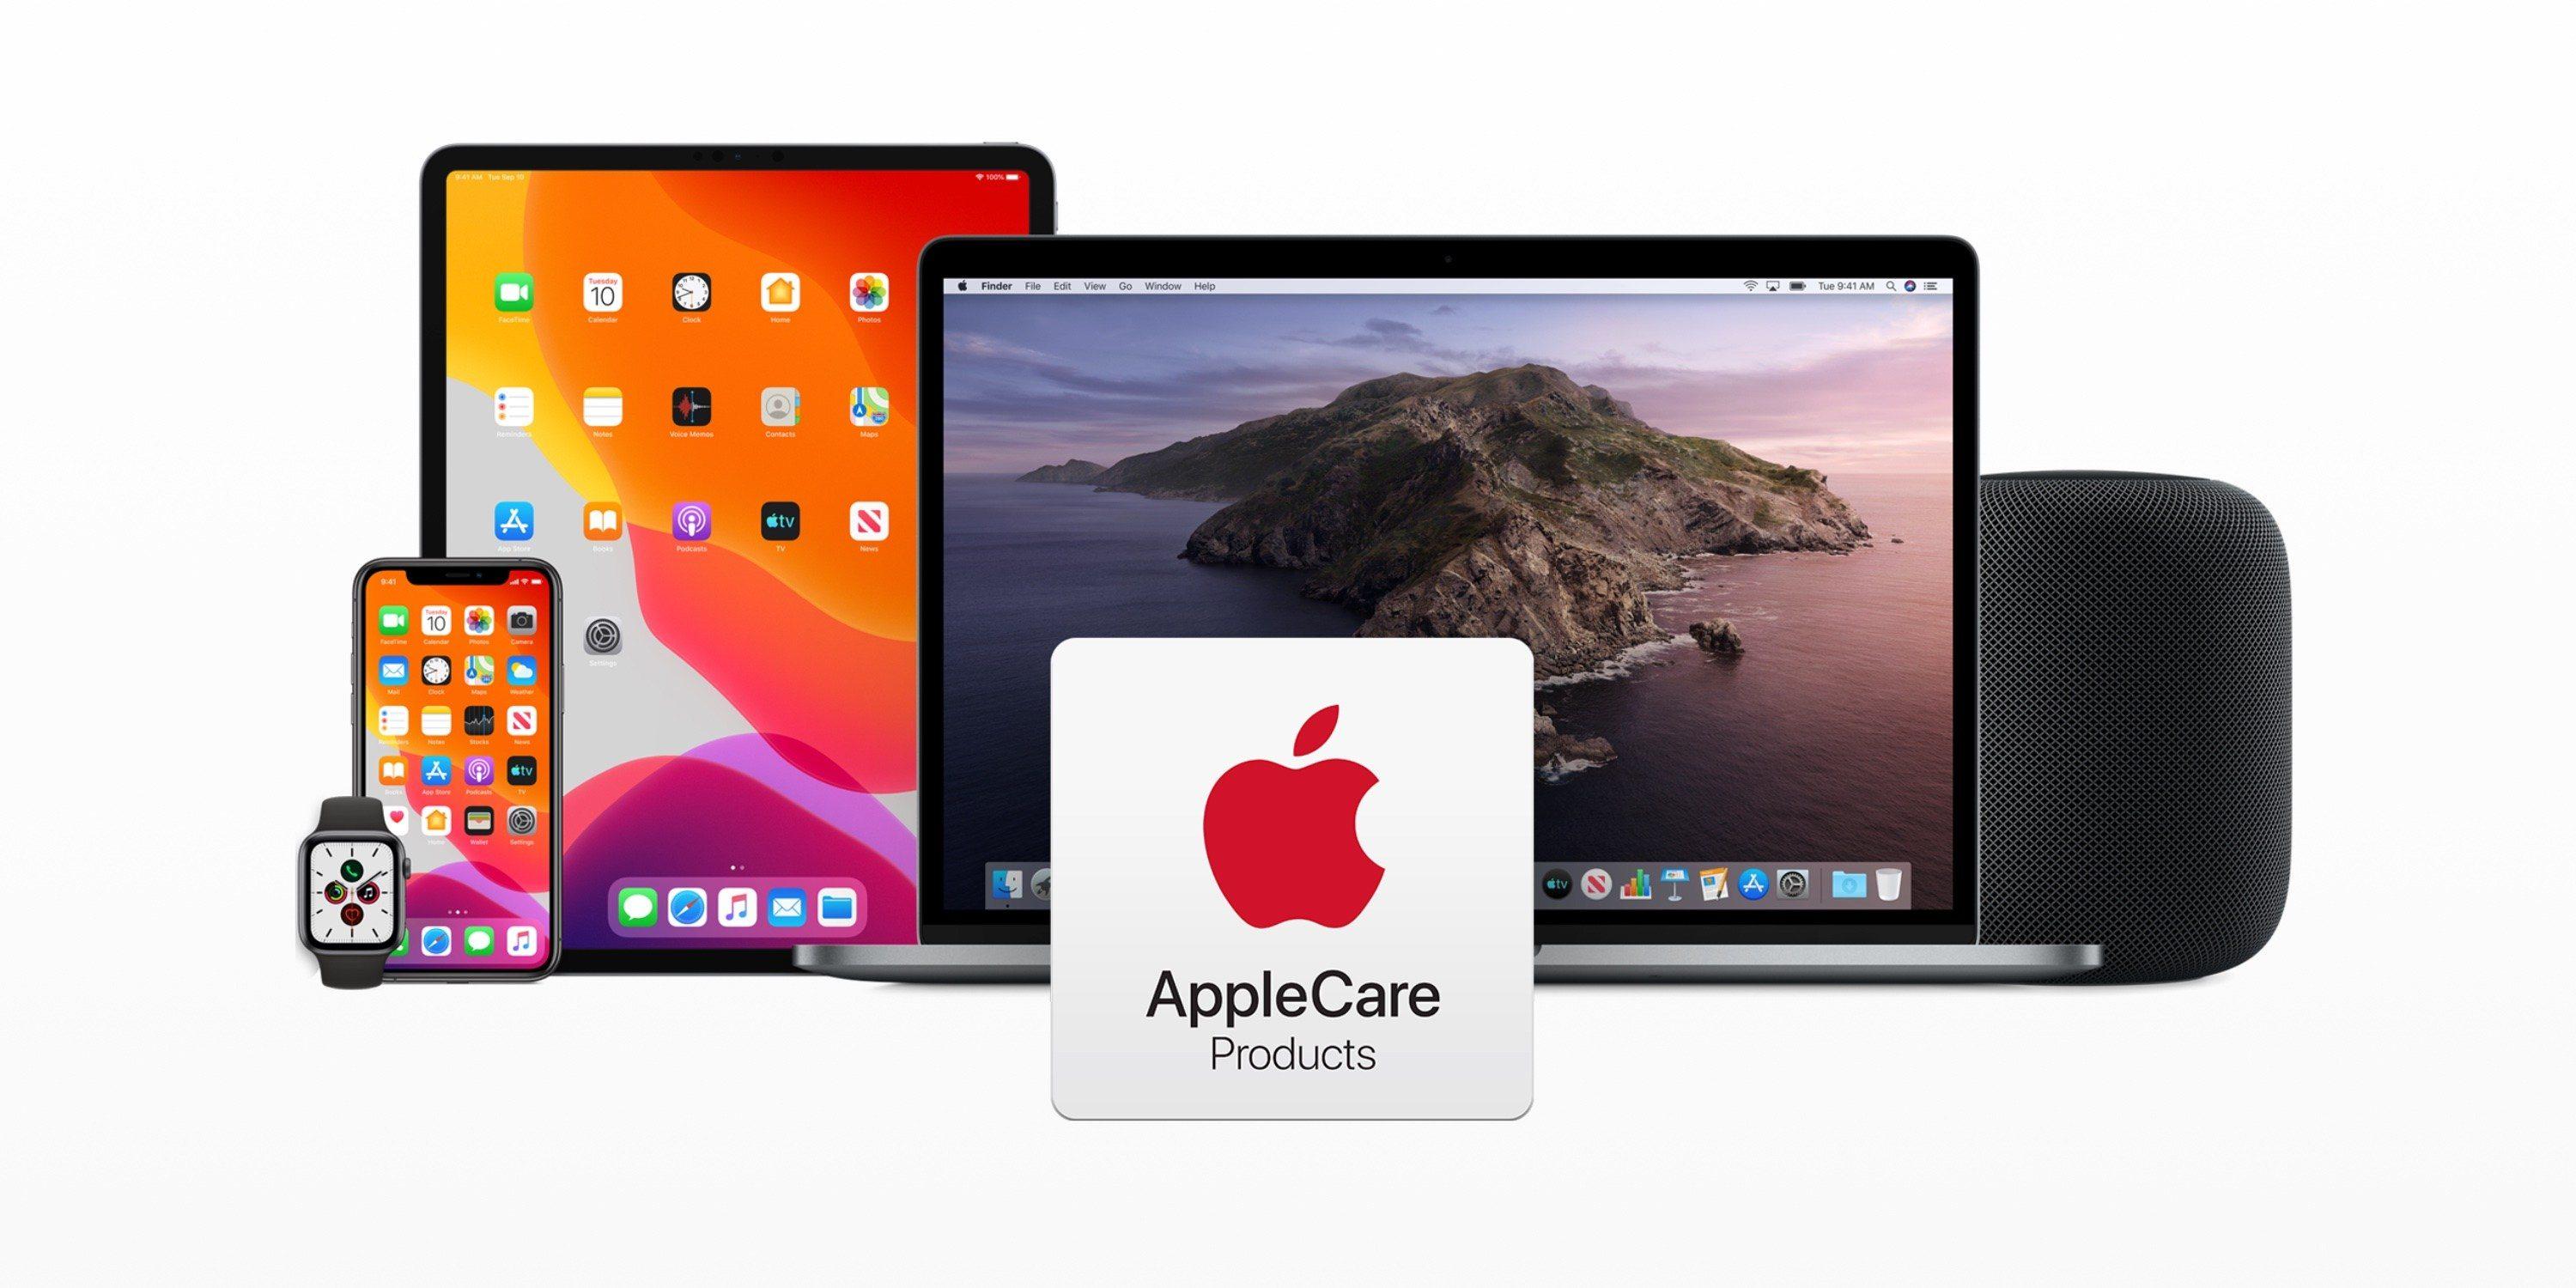 How to Decide if AppleCare is Worth the Price